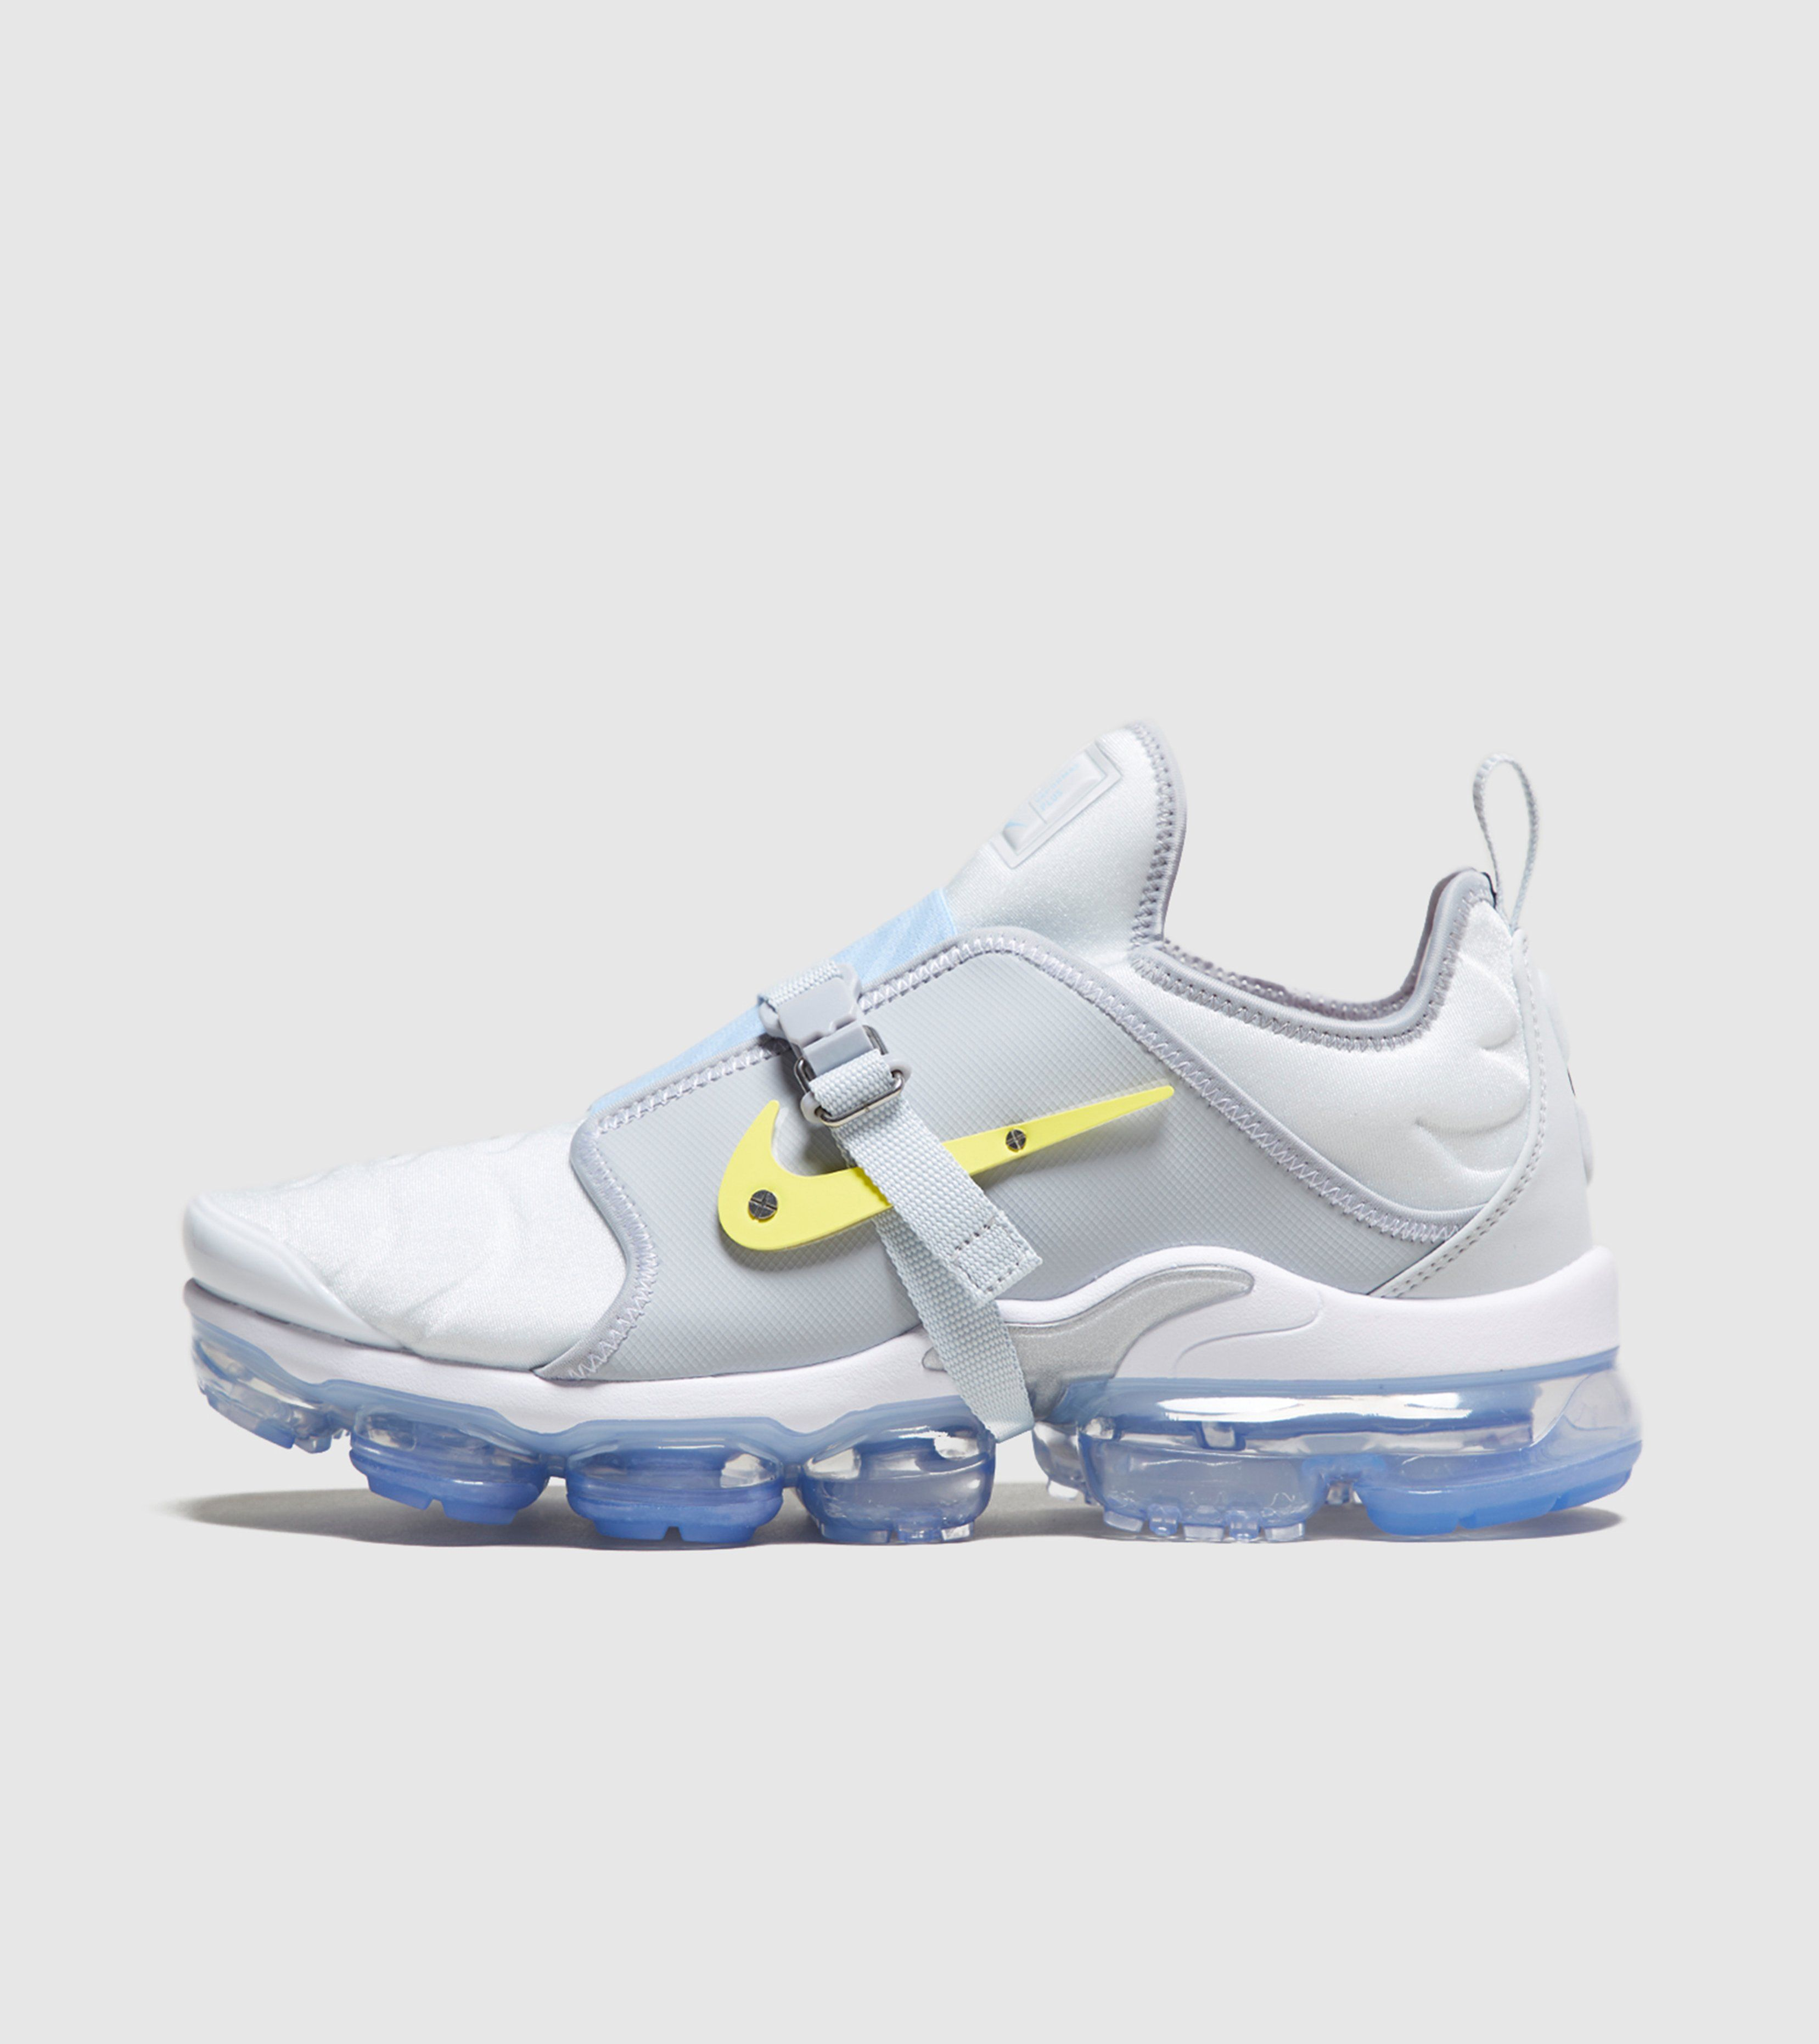 Nike Air VaporMax Plus 'On Air' QS